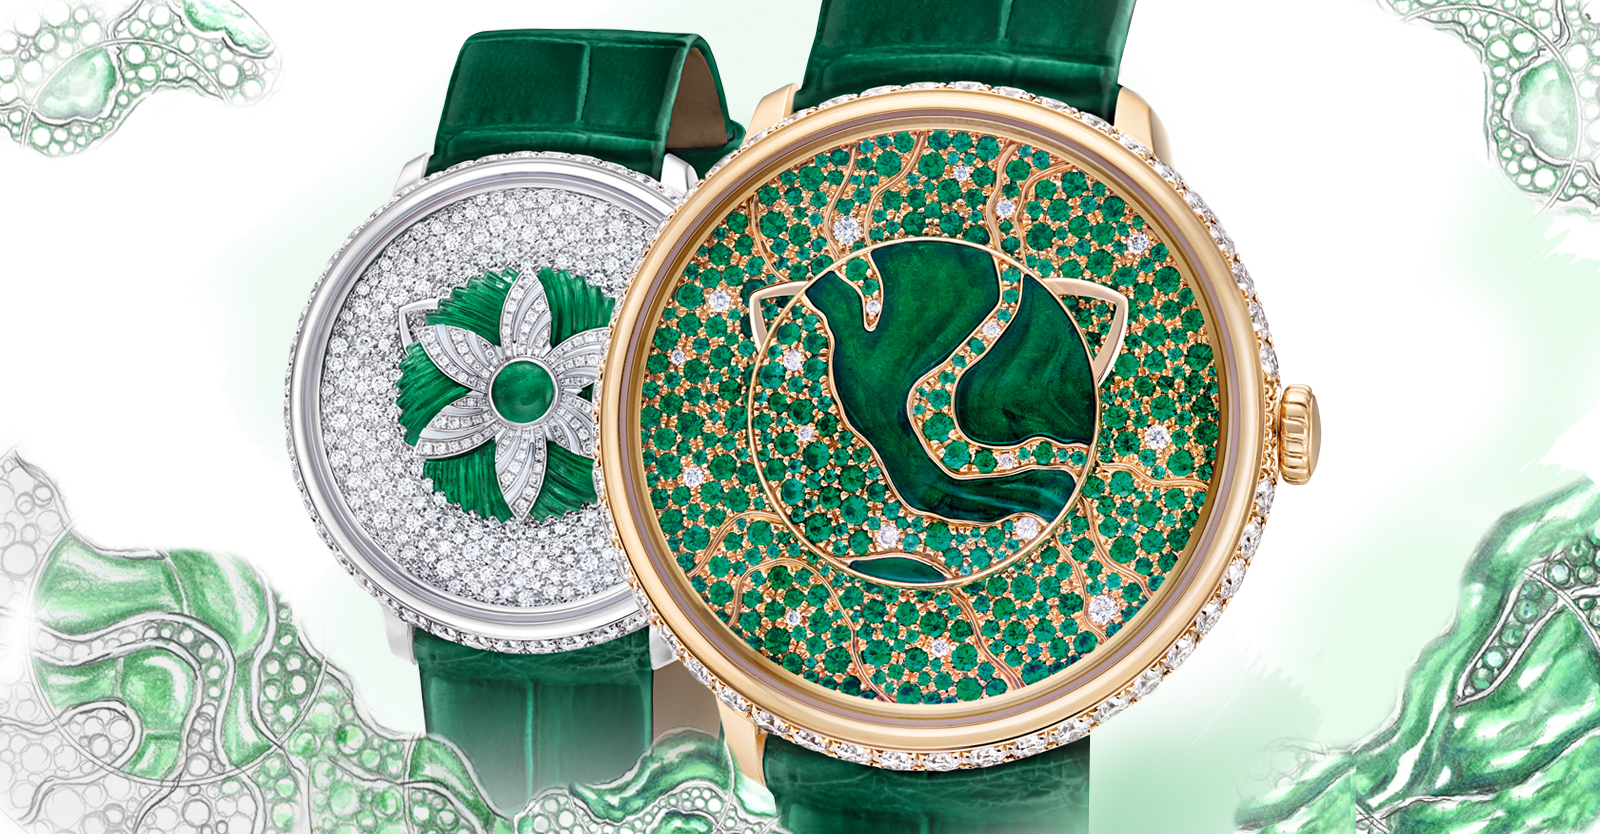 Two lady's timepieces from the Fabergé Dalliance Collection. Watch on left is the Fabergé Lady Libertine II Timepiece. Watch on right is the Fabergé Lady Libertine I Timepiece.